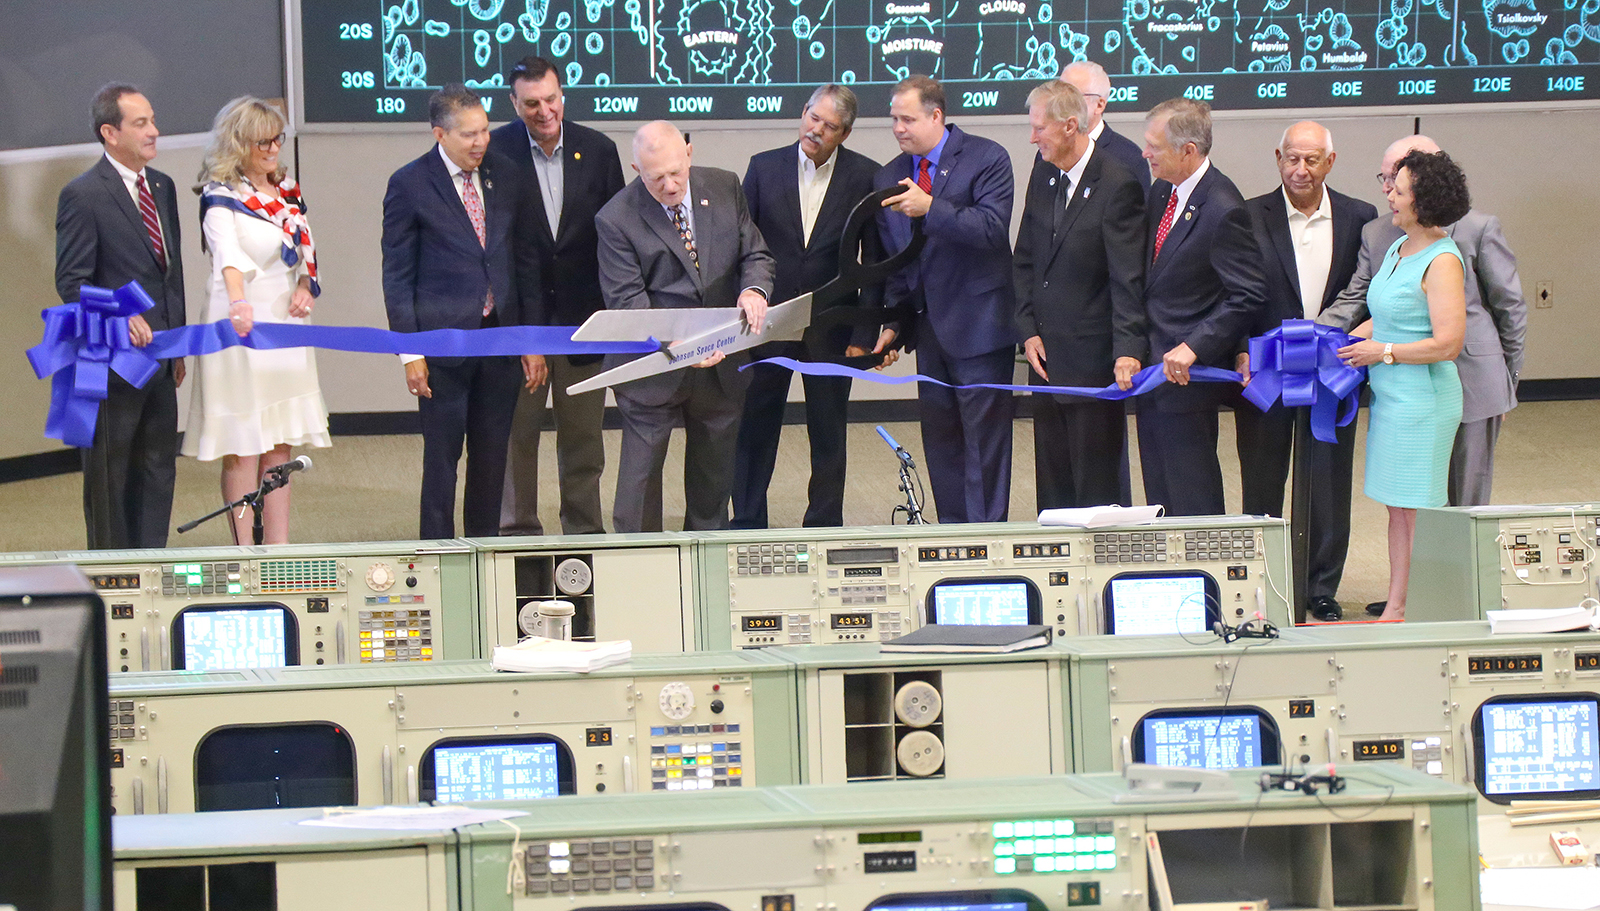 Gene Kranz, flight director for the Apollo 11 mission, cuts the ribbon of the newly restored Apollo Mission Control Center at the Space Center Houston on June 28, 2019. Harris (left of Kranz) led the restoration efforts. (Photo by Space Center Houston.)